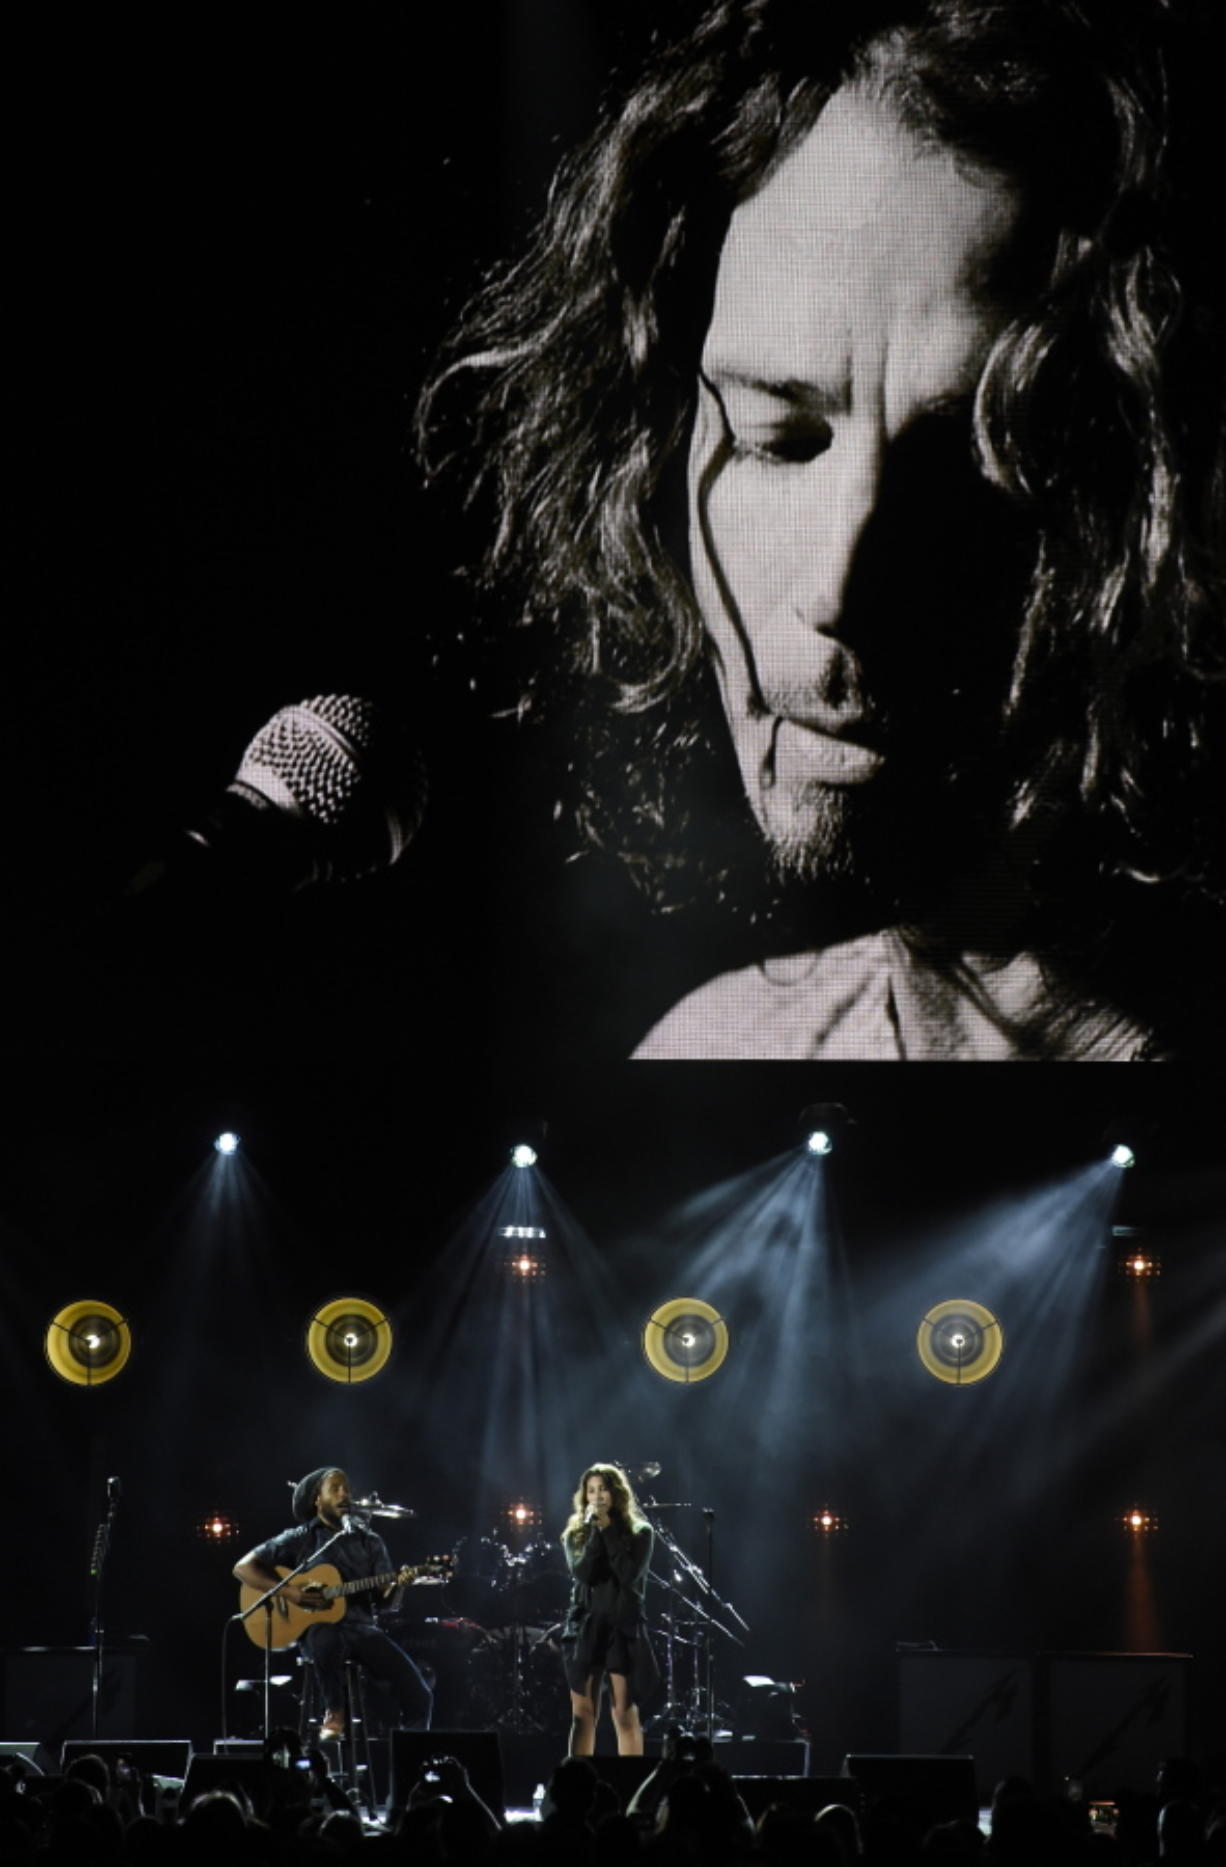 """Toni Cornell, daughter of the late singer Chris Cornell, performs with Ziggy Marley, bottom left, underneath a video image of her father during """"I Am The Highway: A Tribute to Chris Cornell"""" at The Forum, Wednesday, Jan. 16, 2019, in Inglewood, Calif."""